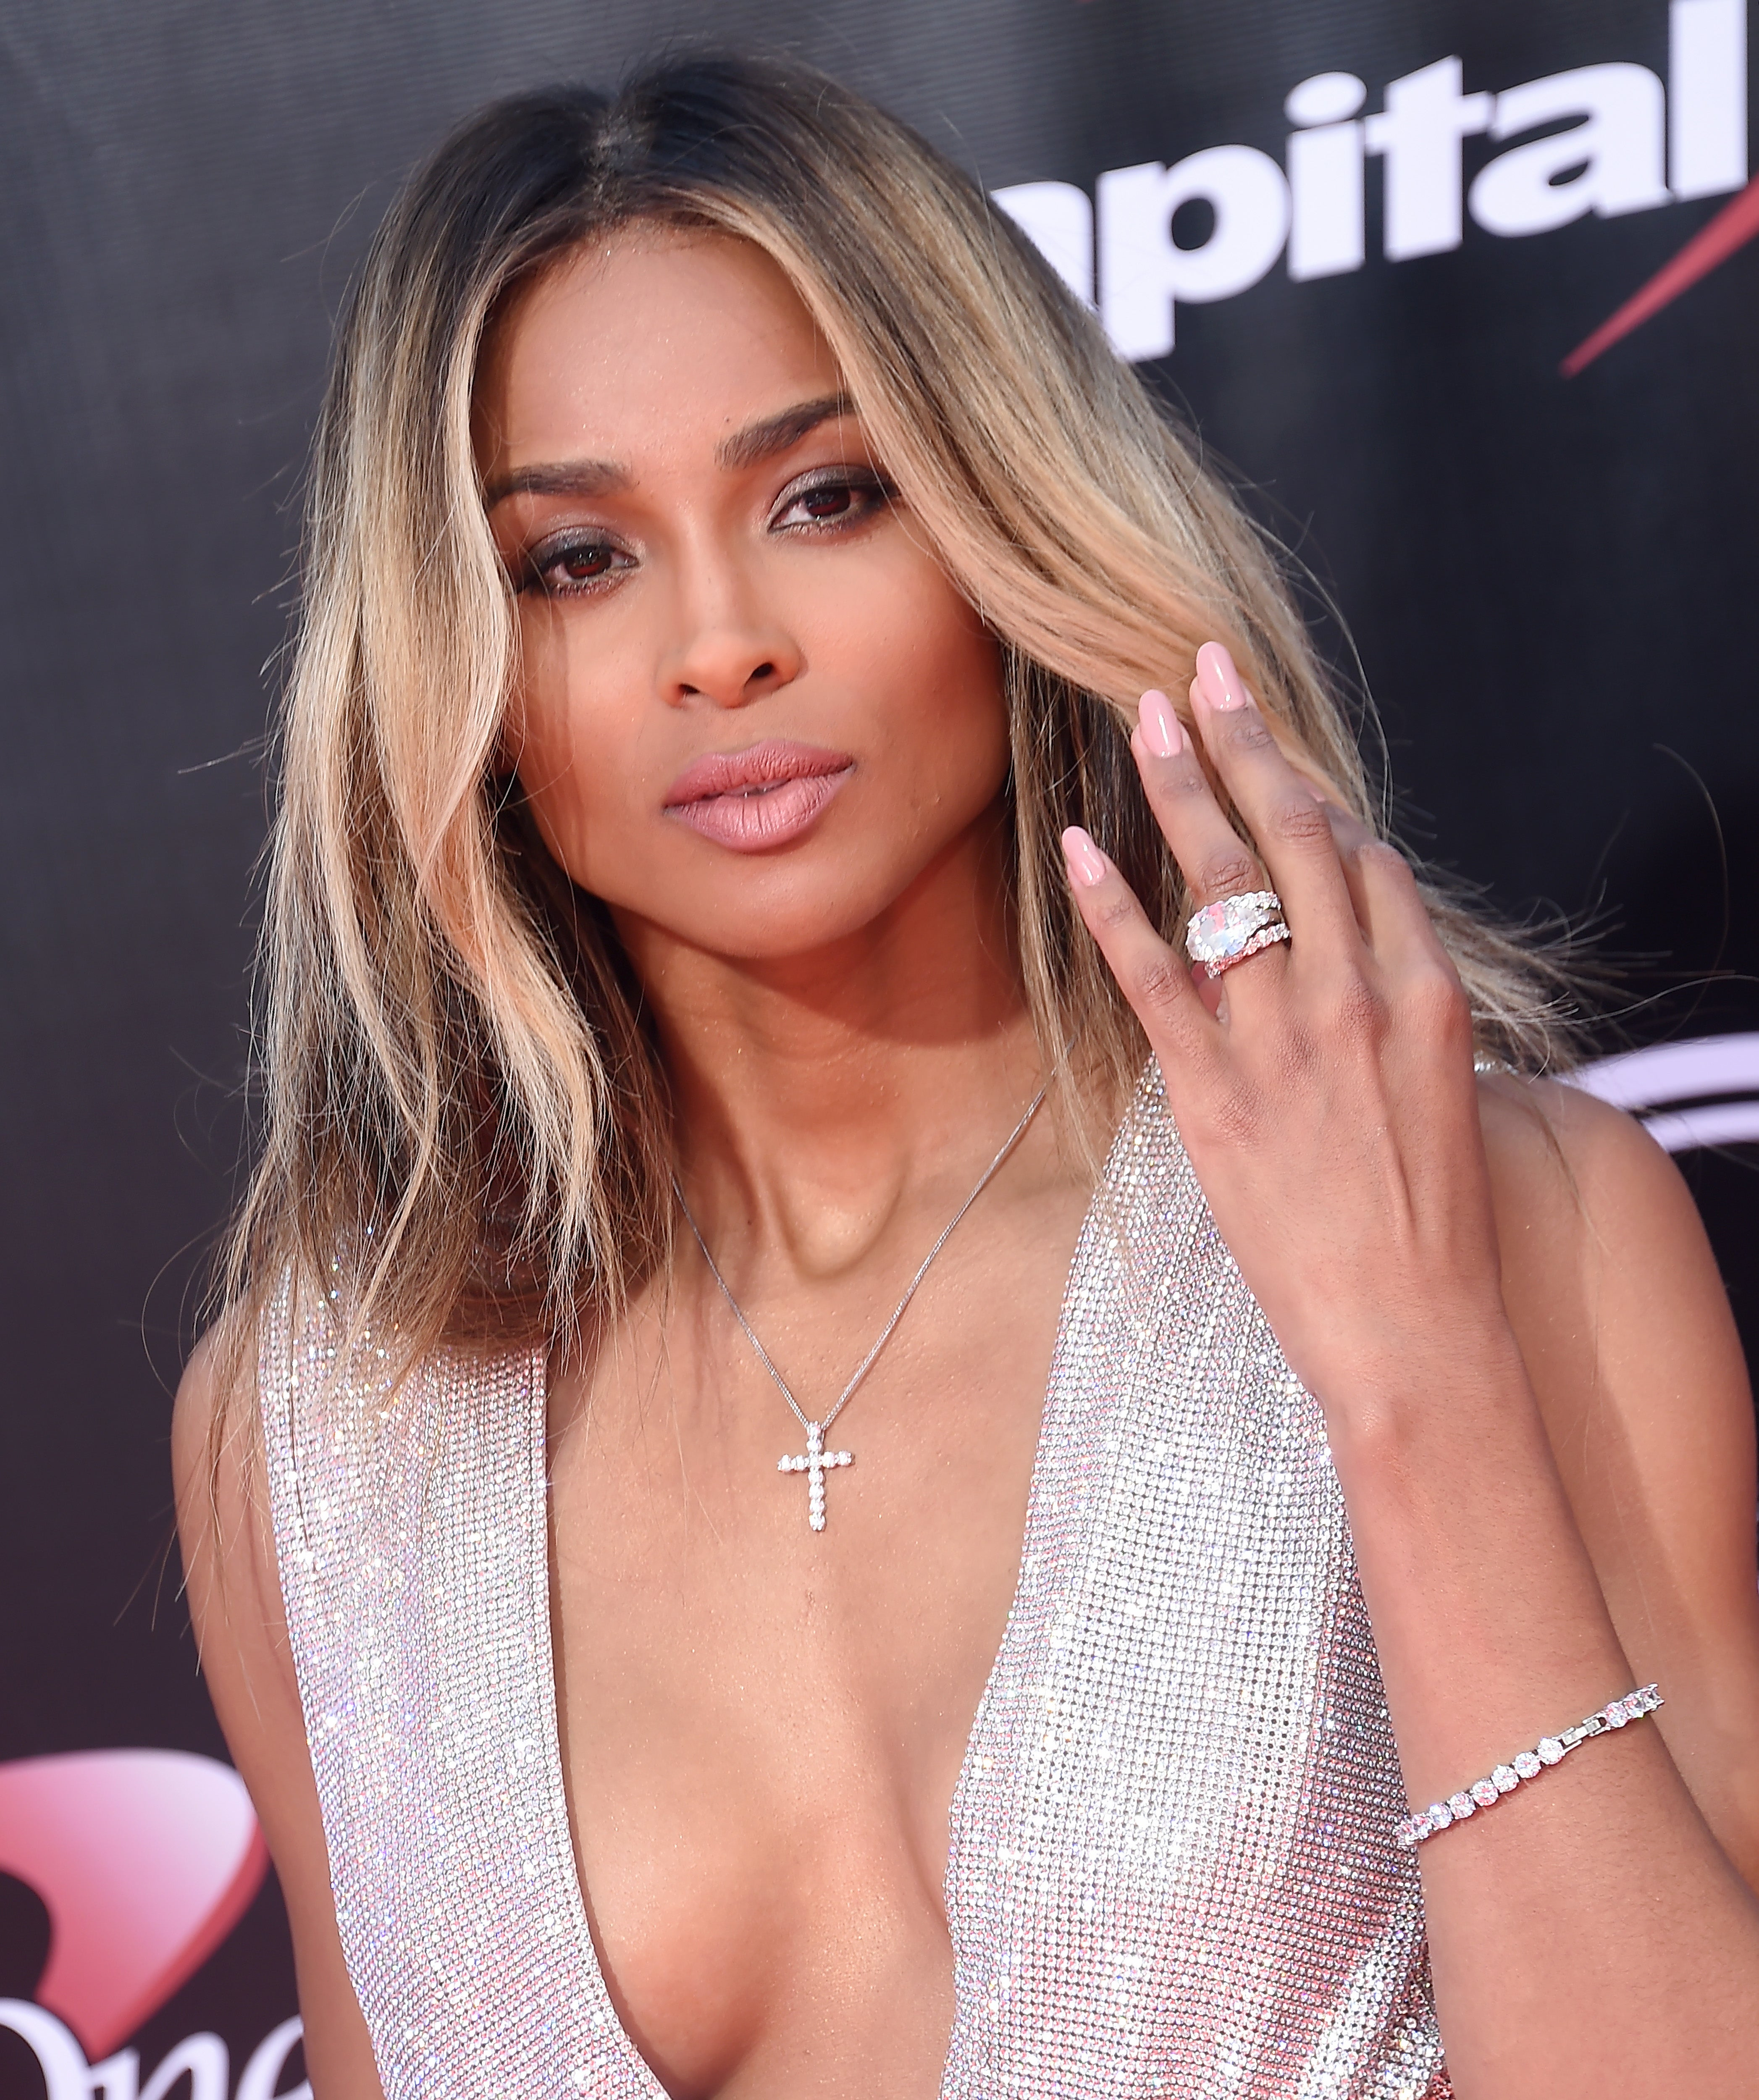 17 Celeb Engagement Rings That Have Us Swooning